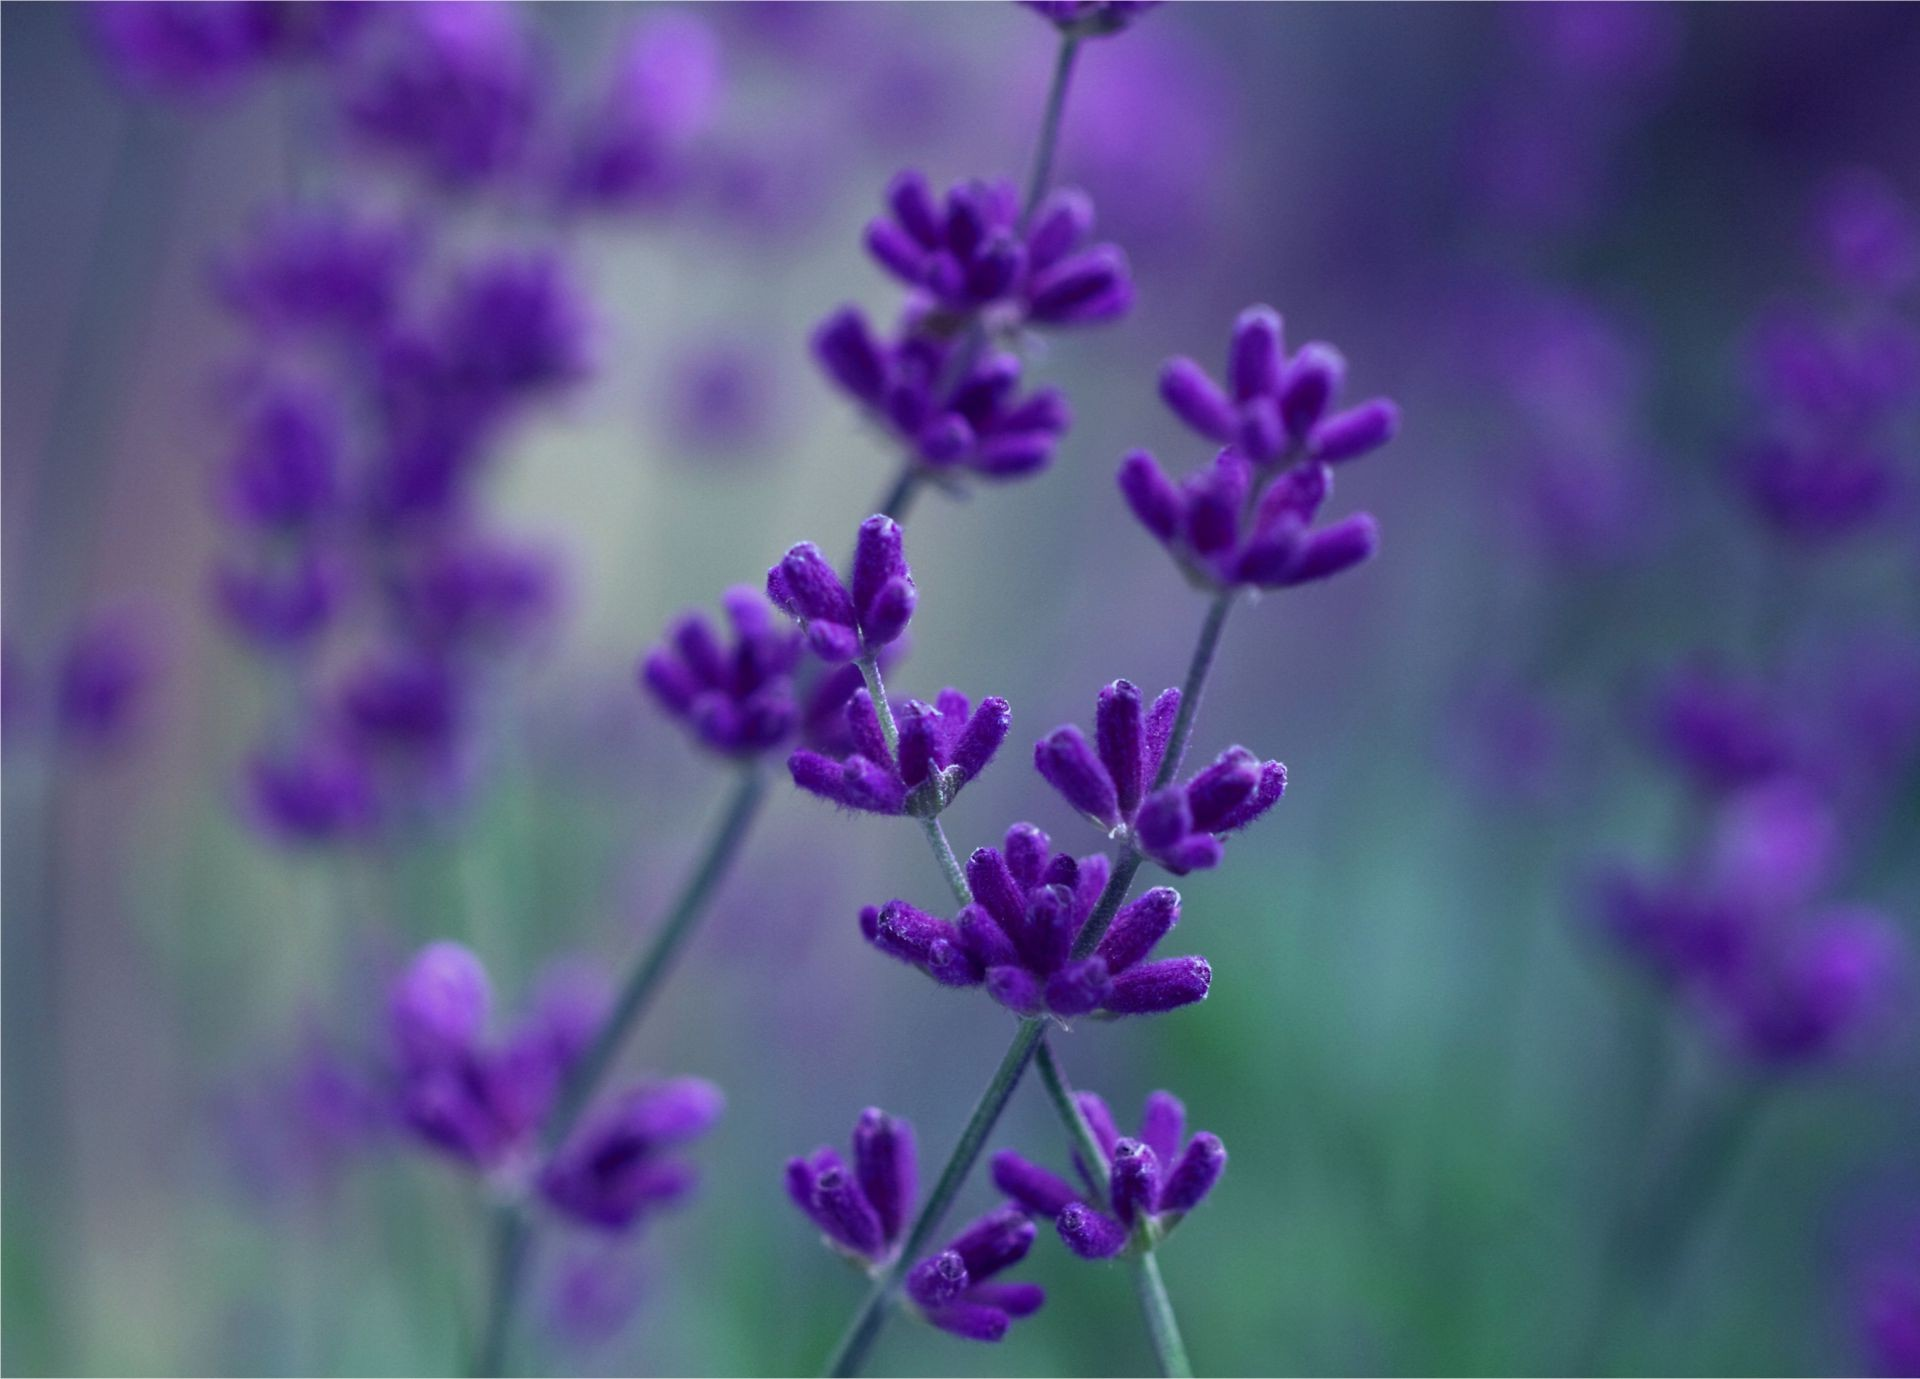 flowers nature flower flora summer violet garden field herbal lavender floral perfume growth blooming color close-up aromatic outdoors petal